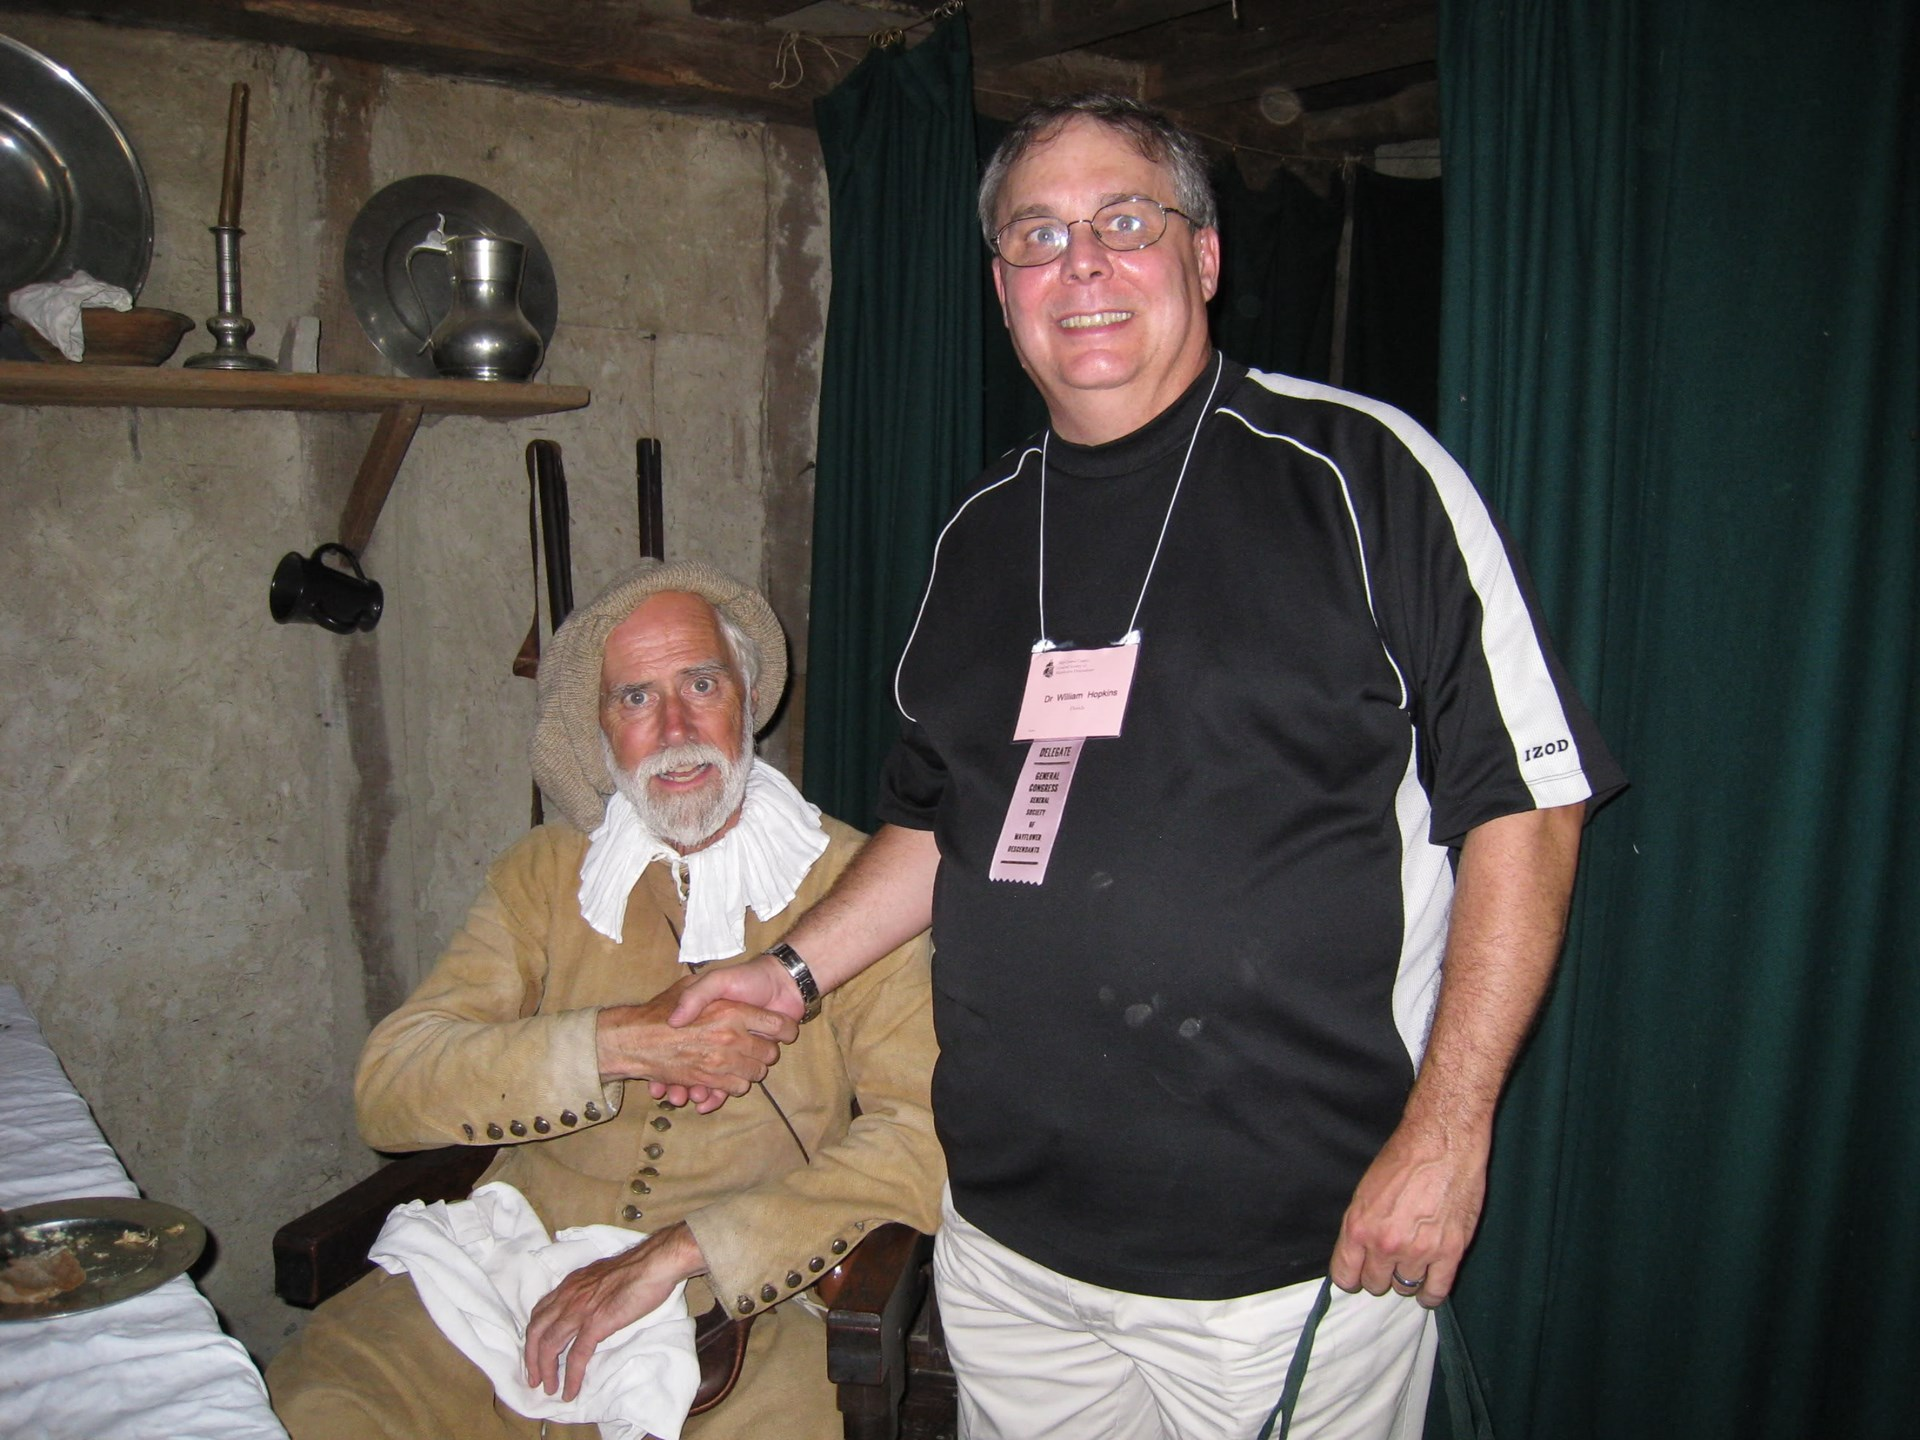 One of the descendants of Stephen Hopkins with an actor in the role of Stephen at the Plymouth Plantation, a re-creation of Plymouth as it would have been in 1627.